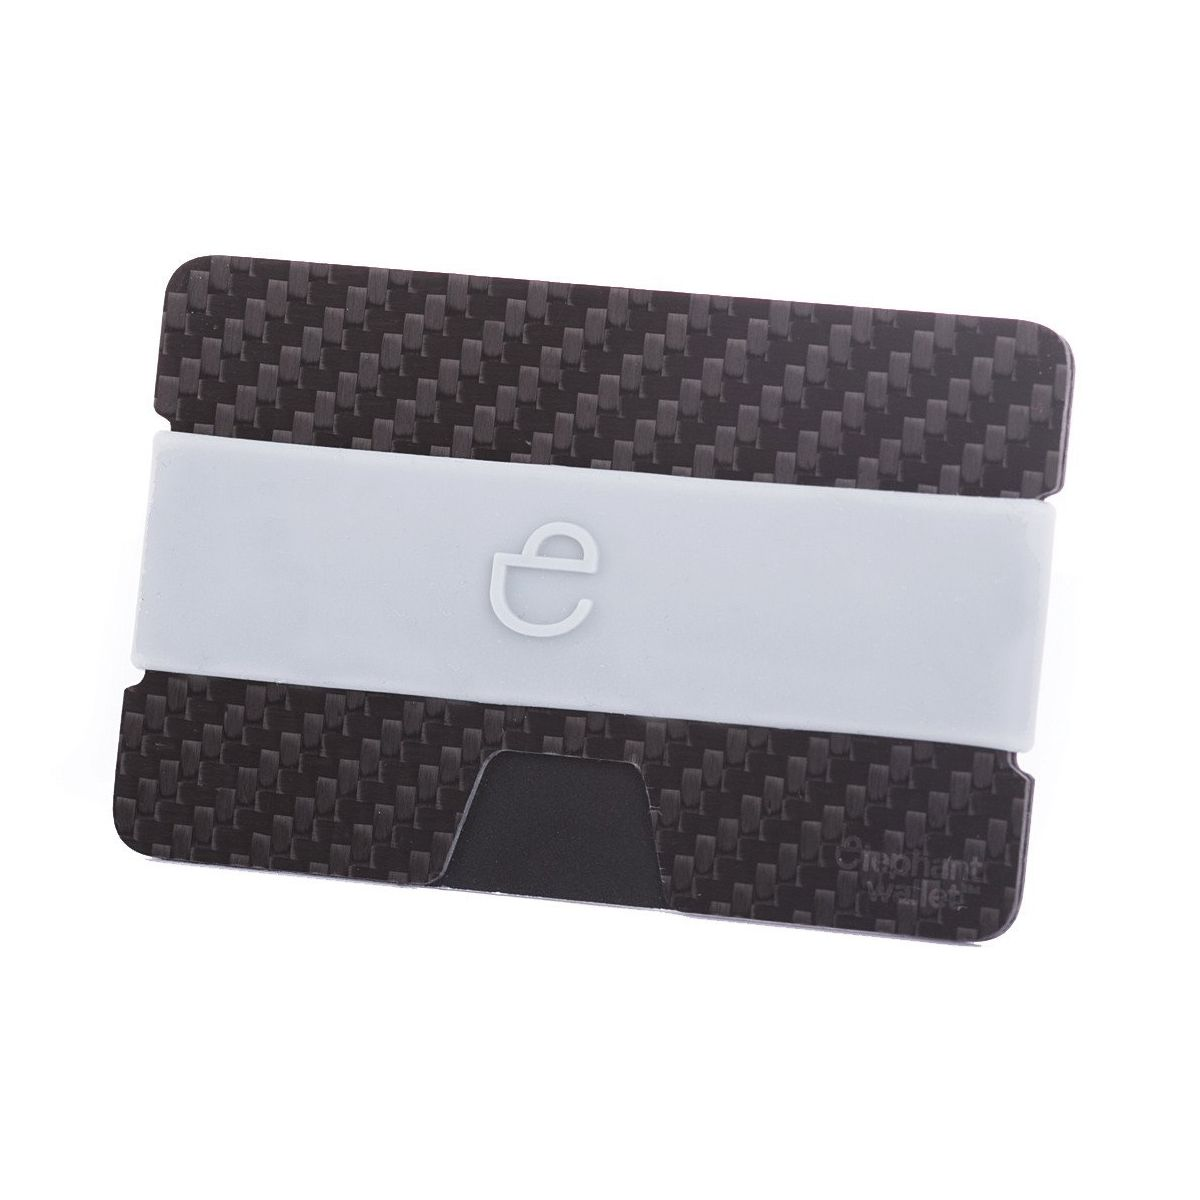 Minimalist Carbon Fiber Wallet with Silicone Strap - Carbon/Grey